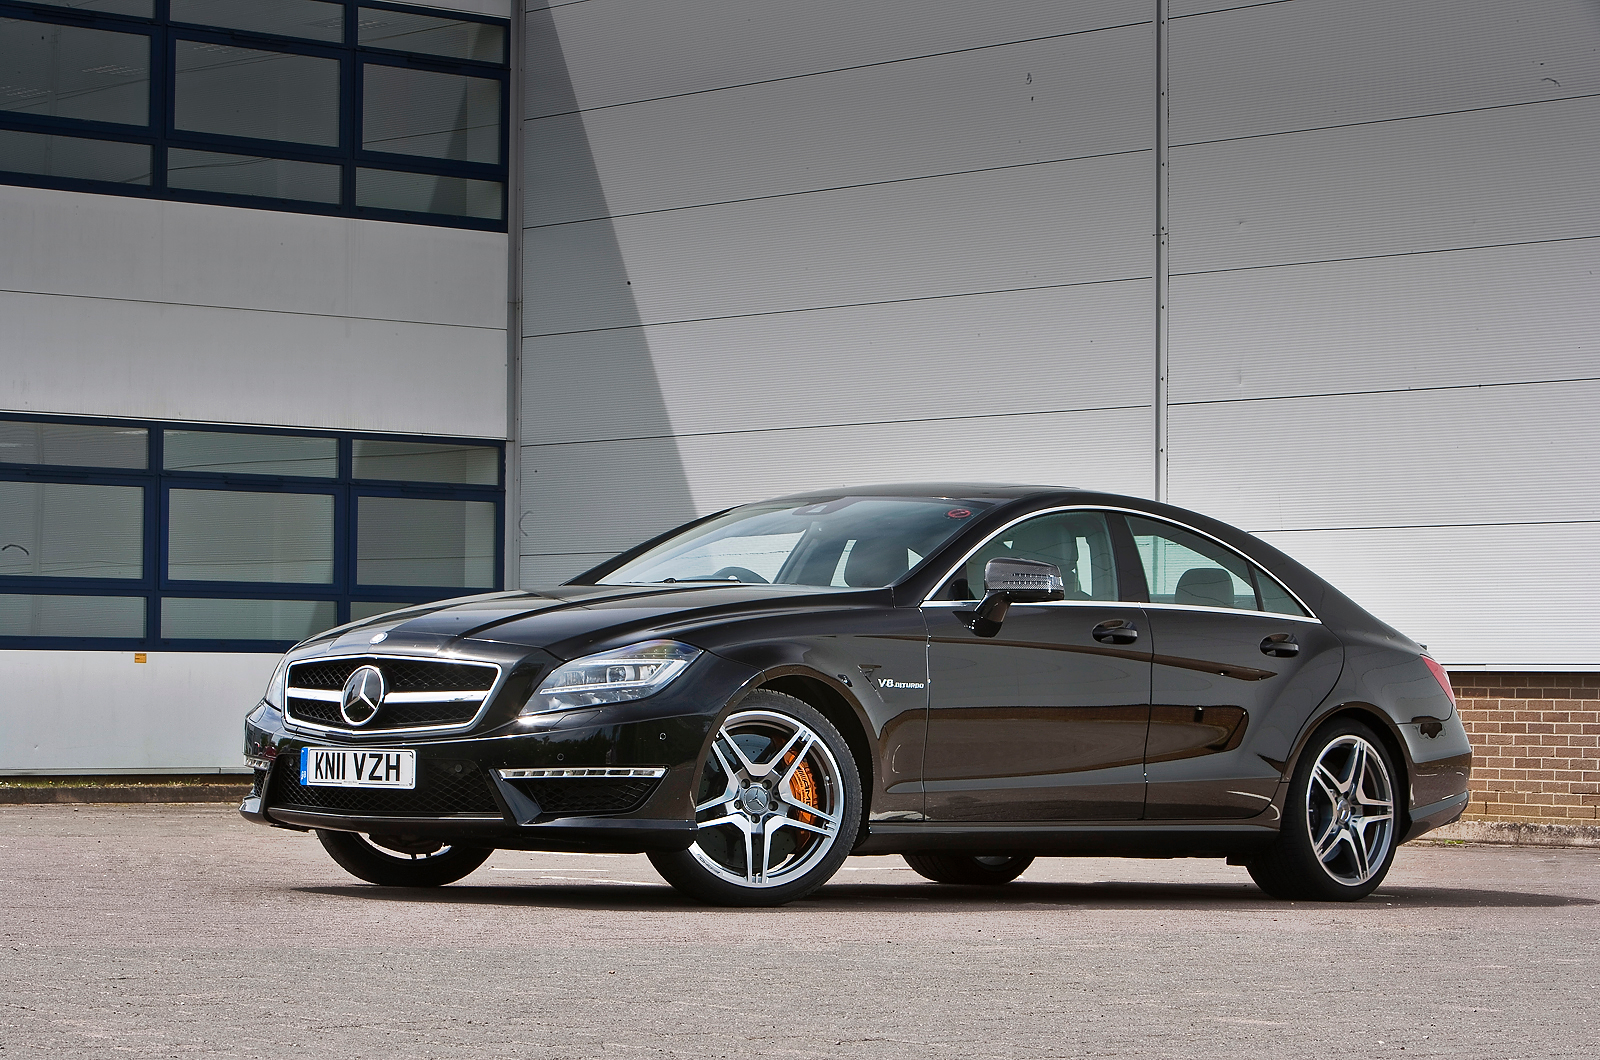 Mercedes Cls 63 Amg Black Series Mercedes Cls 63 Amg Black